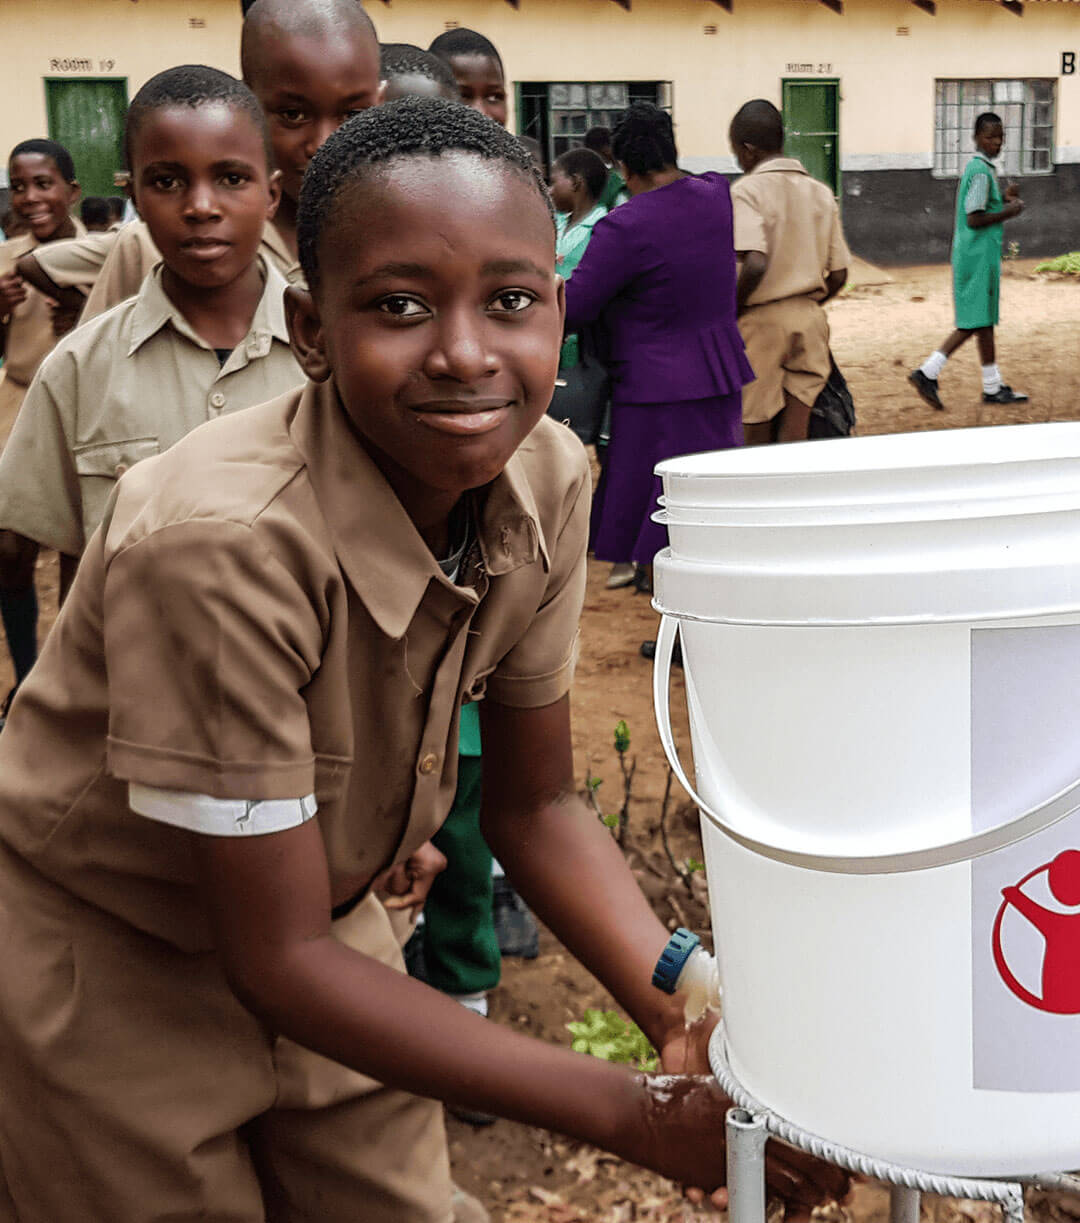 A student from a school in Gokwe North district, Zimbabwe, uses a handwashing station provided by Save the Children's Emergency Health Unit.